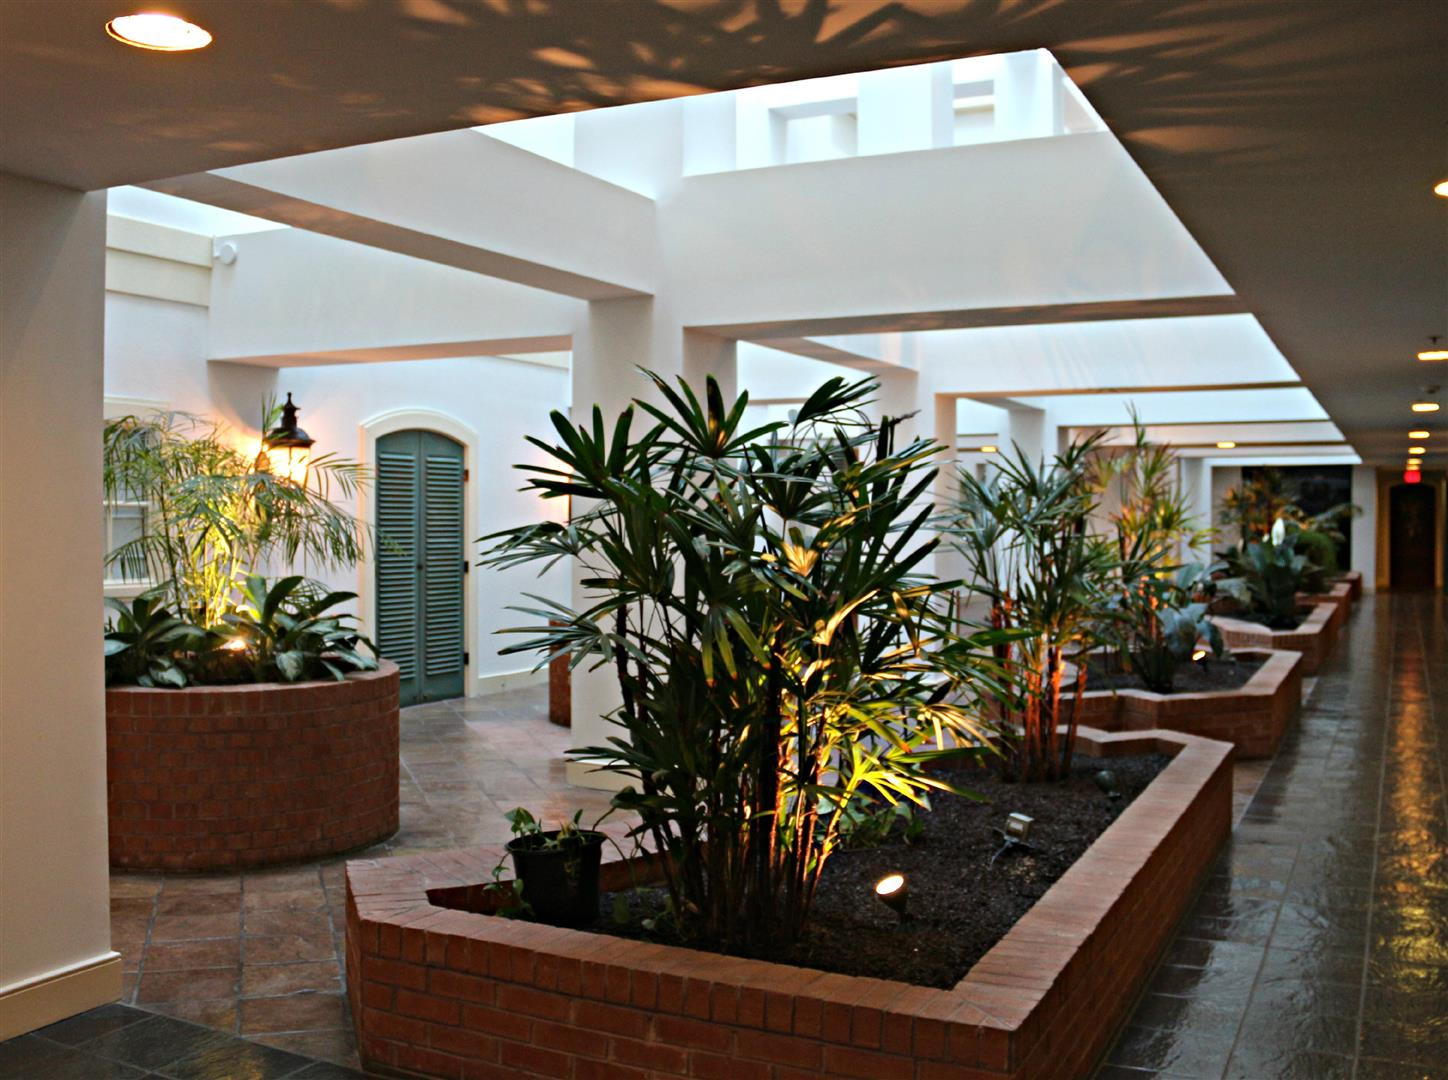 700S.PetersCondos,FirstfloorAtrium.jpg